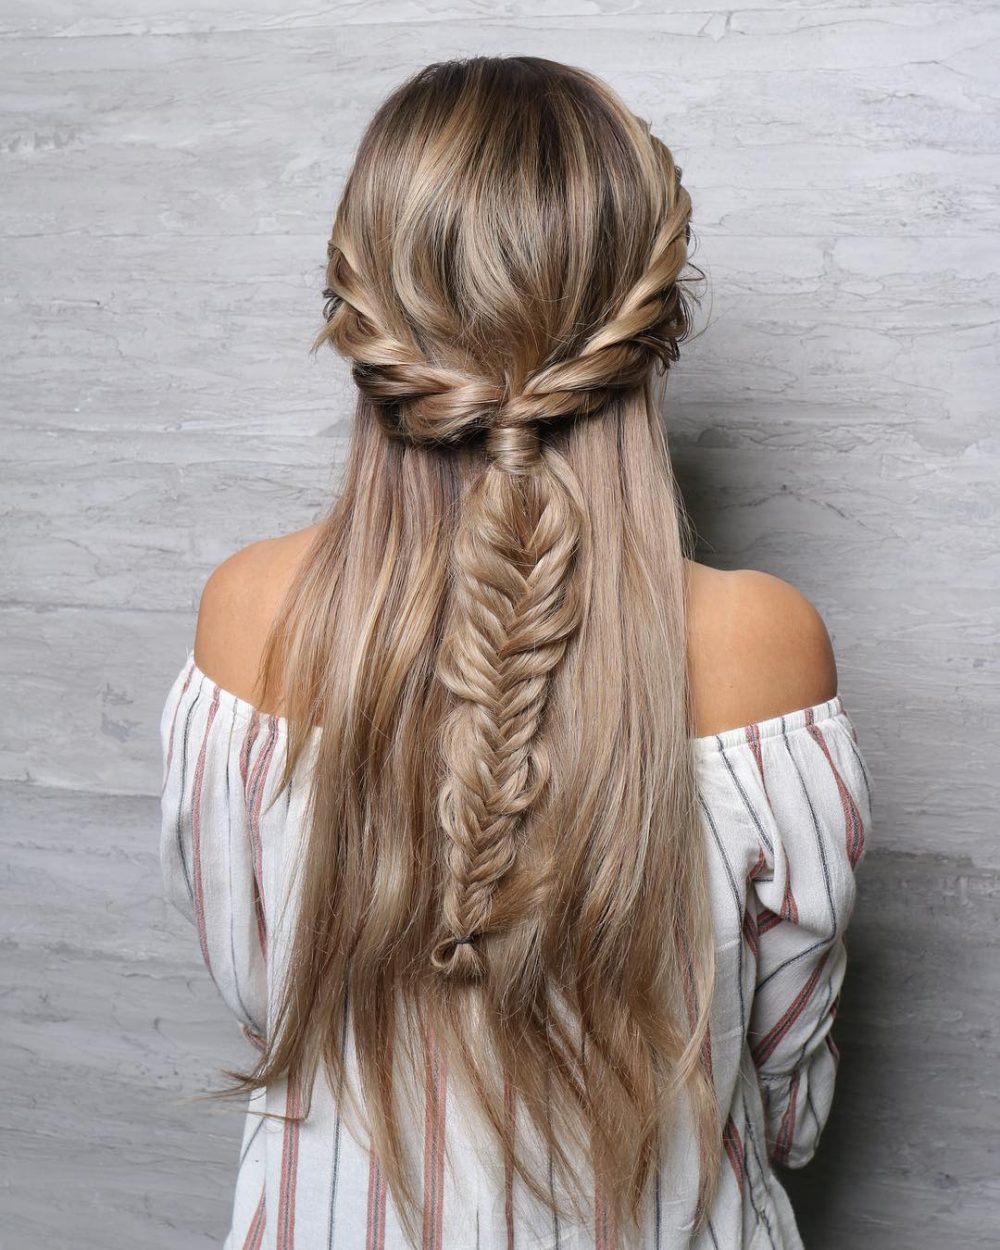 Festival-Inspired Half Updo hairstyle